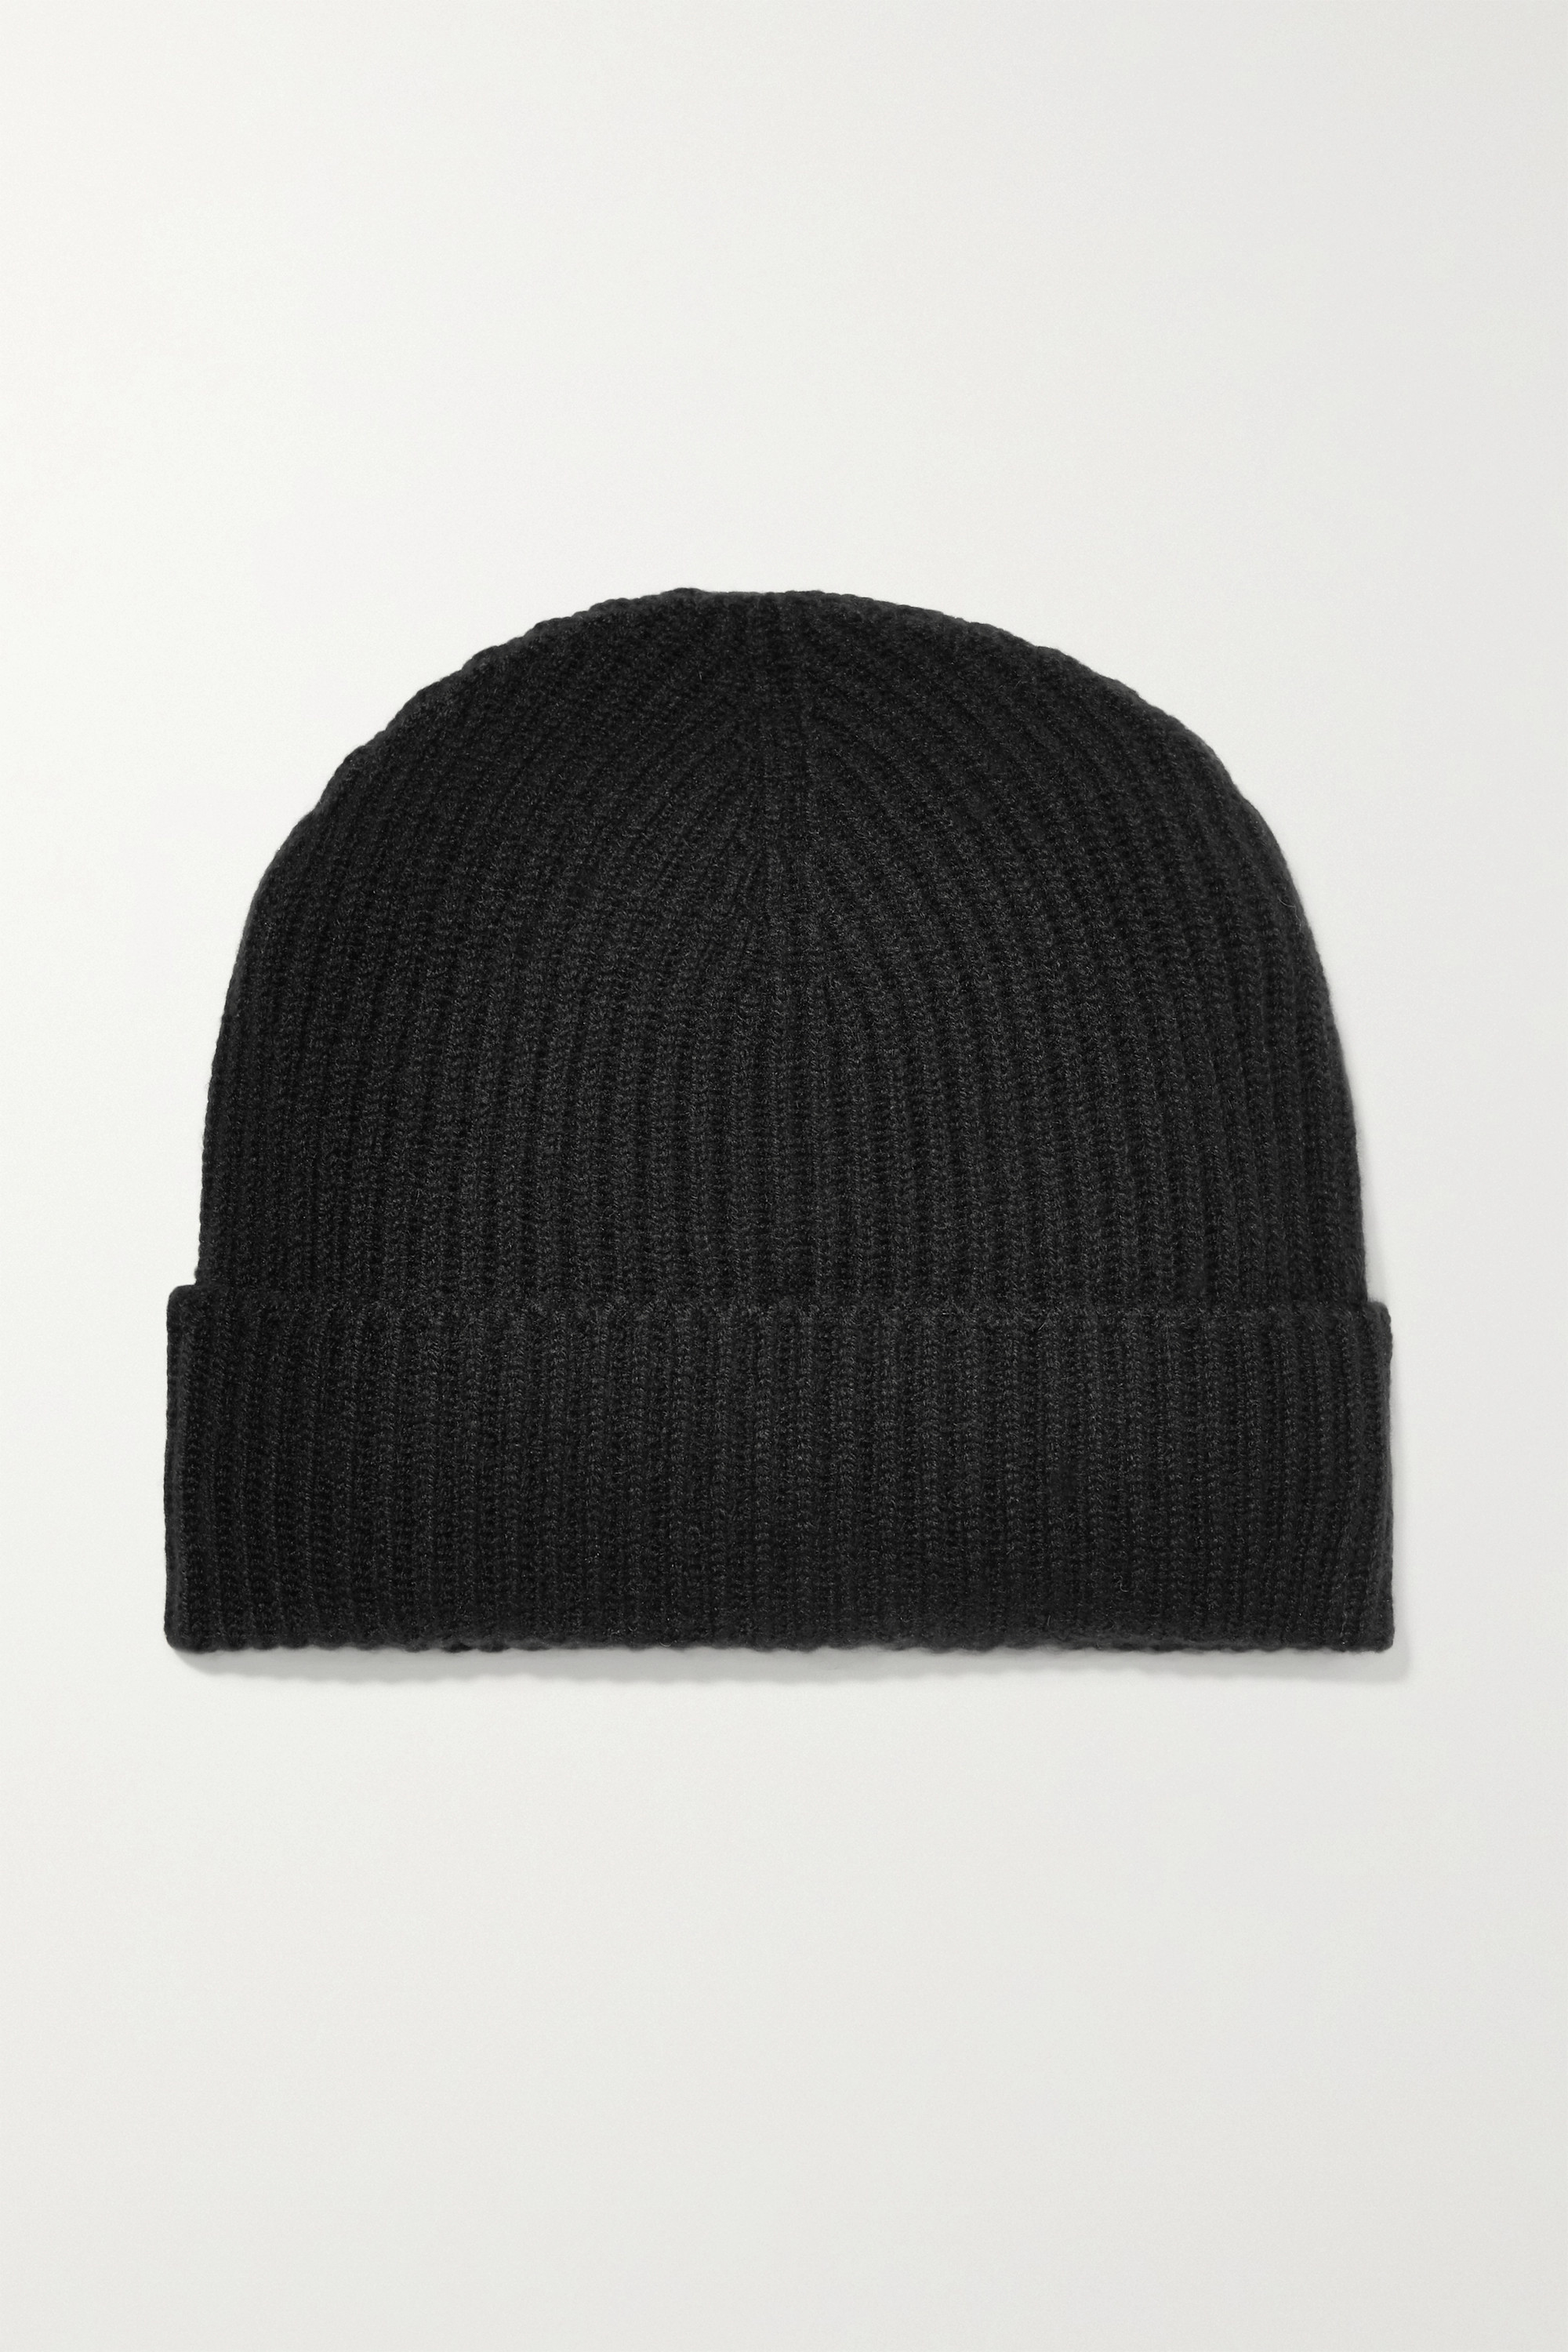 JOHNSTONS OF ELGIN + NET SUSTAIN ribbed cashmere beanie